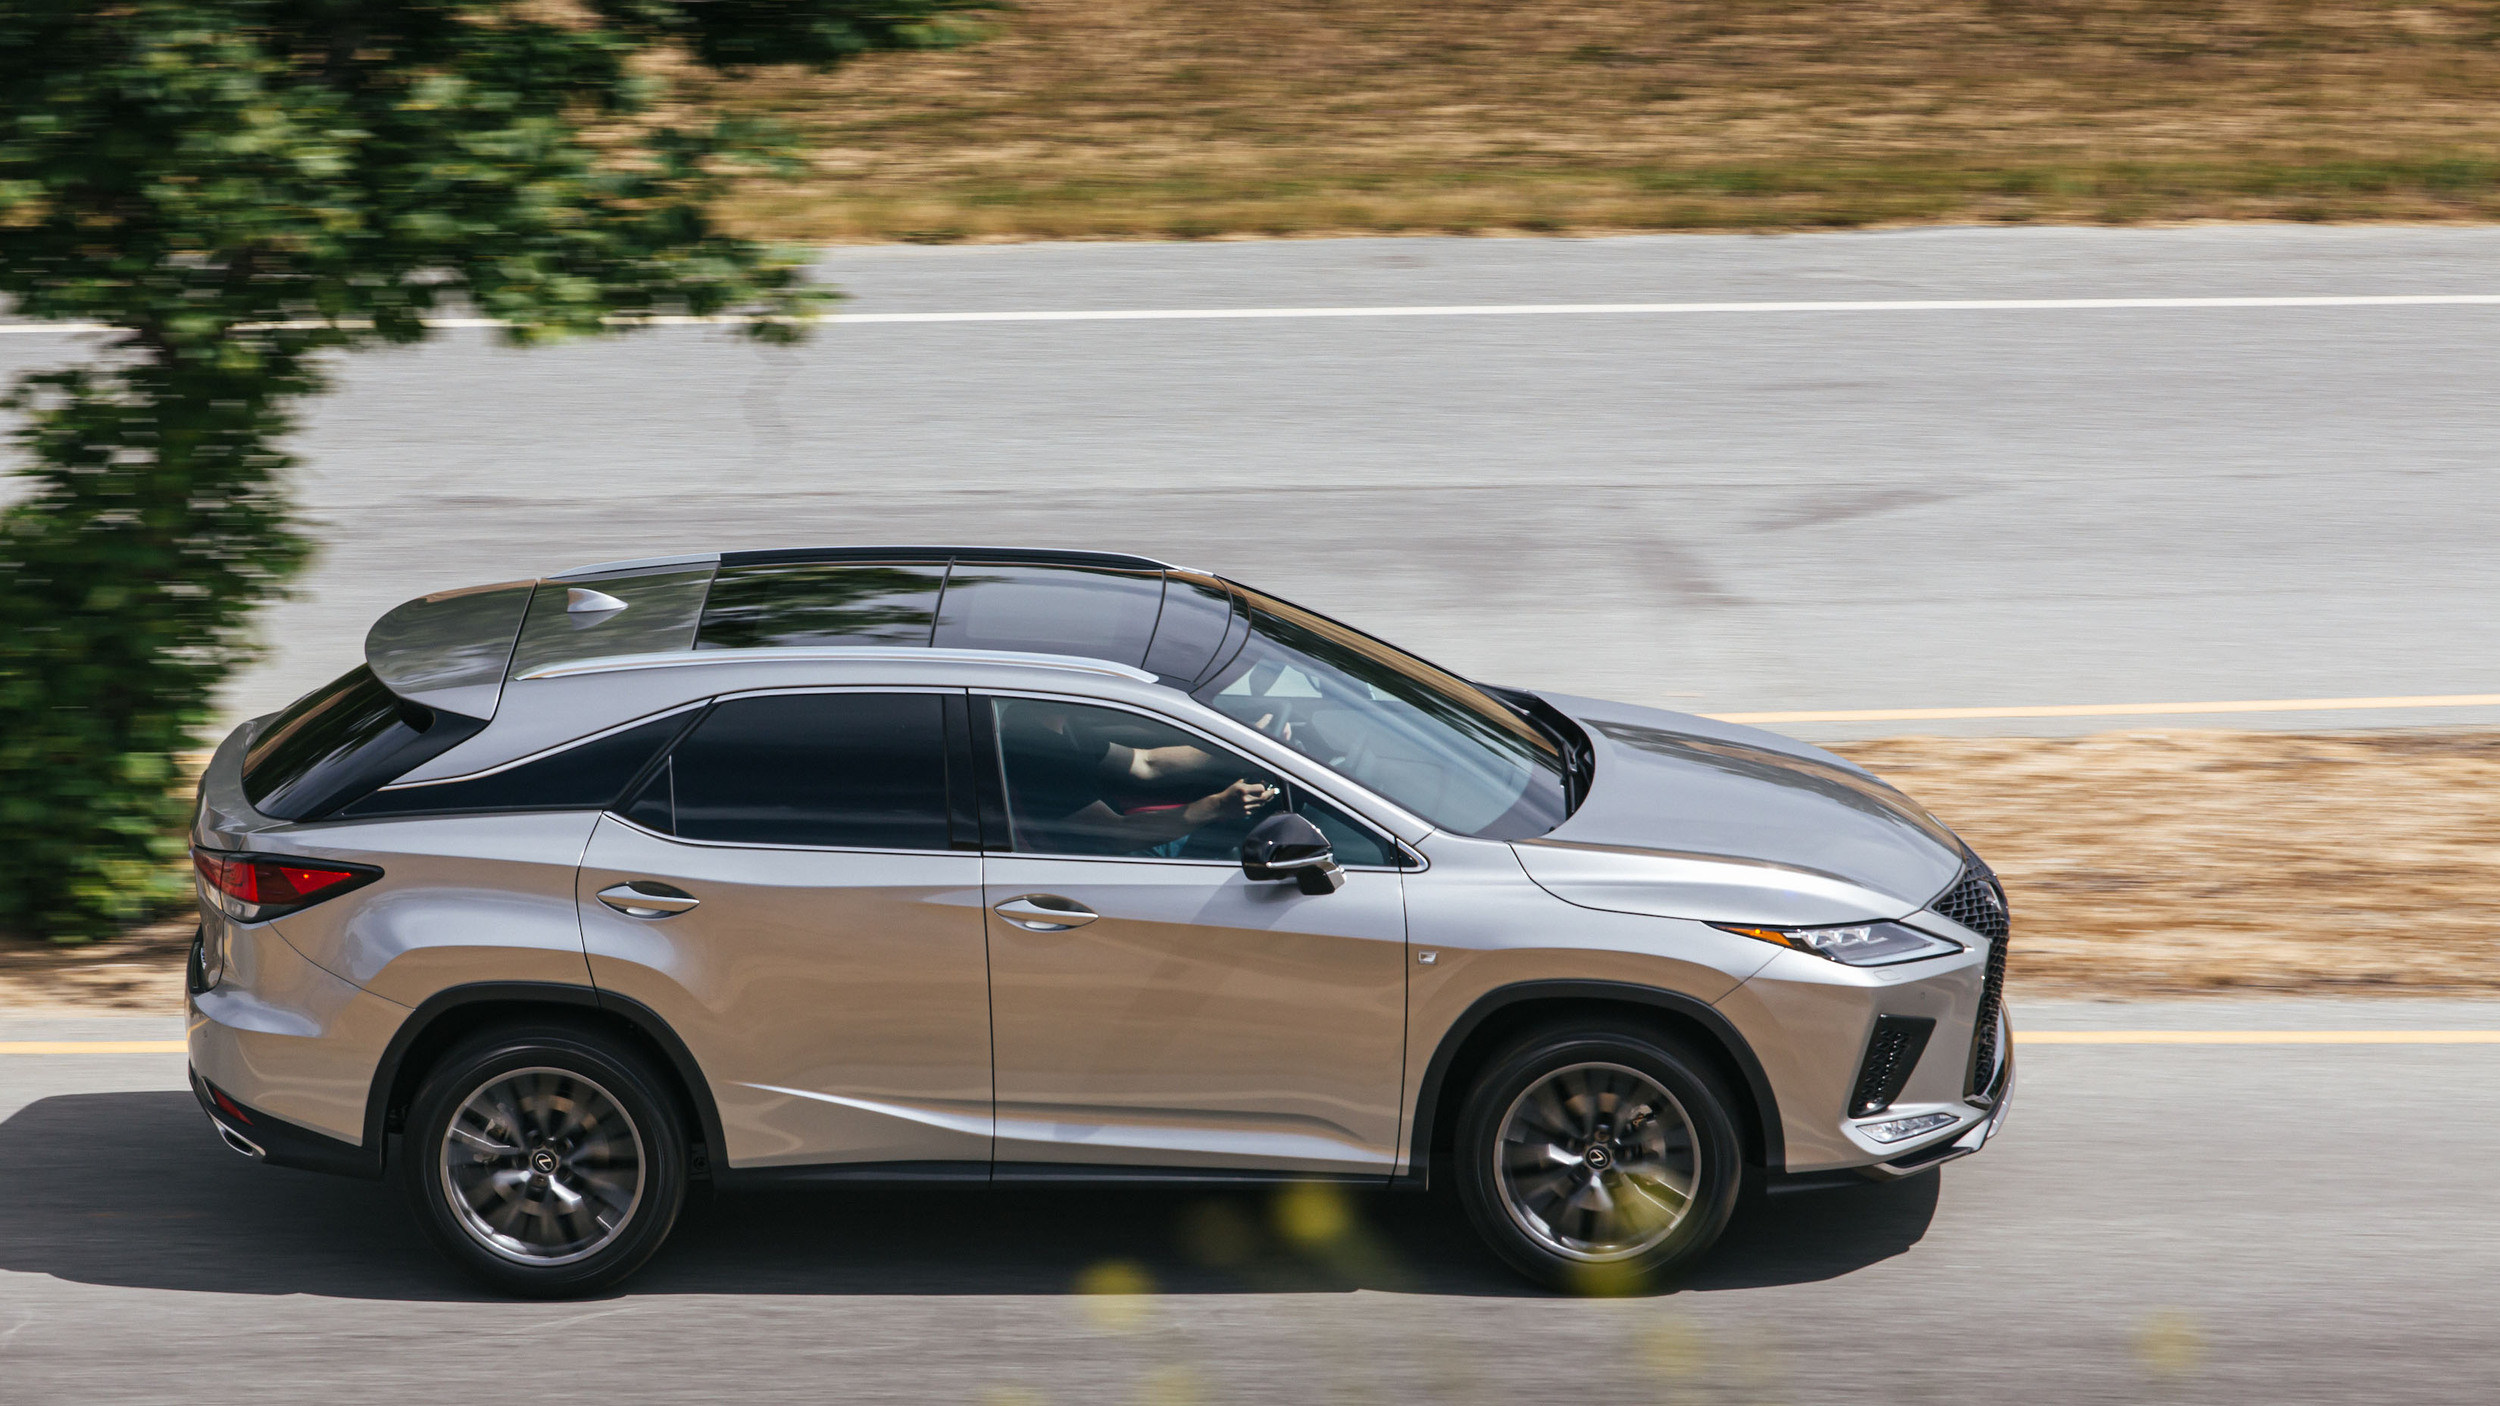 Certified Pre Owned Lexus >> 2020 Lexus RX350 and RX450h updated with new styling, improved tech | Autoblog